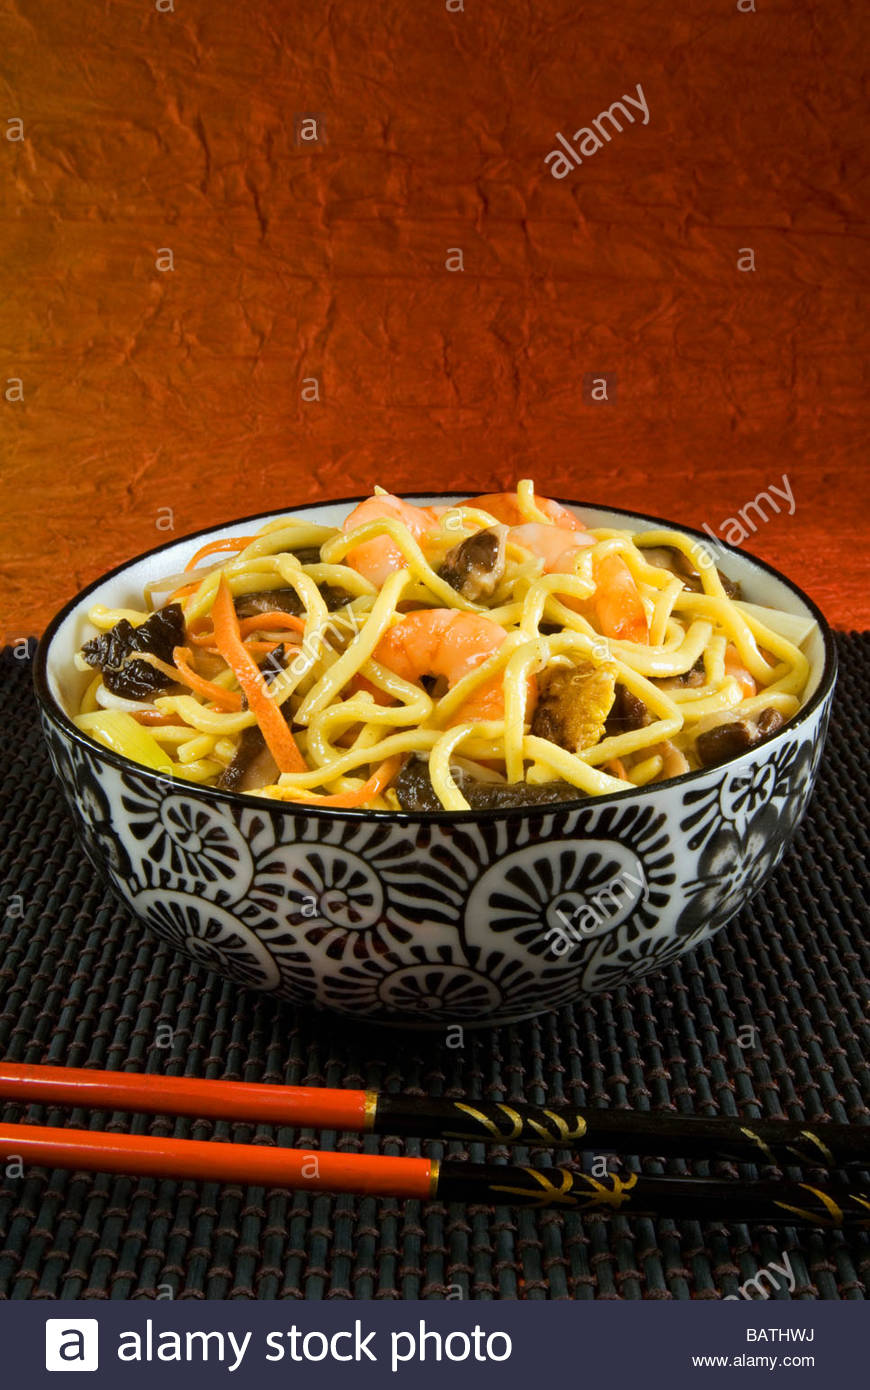 Ch Ao Mien Spaghetti With Crayfishes Mushrooms And Carrots Chinese Stock Photo Alamy